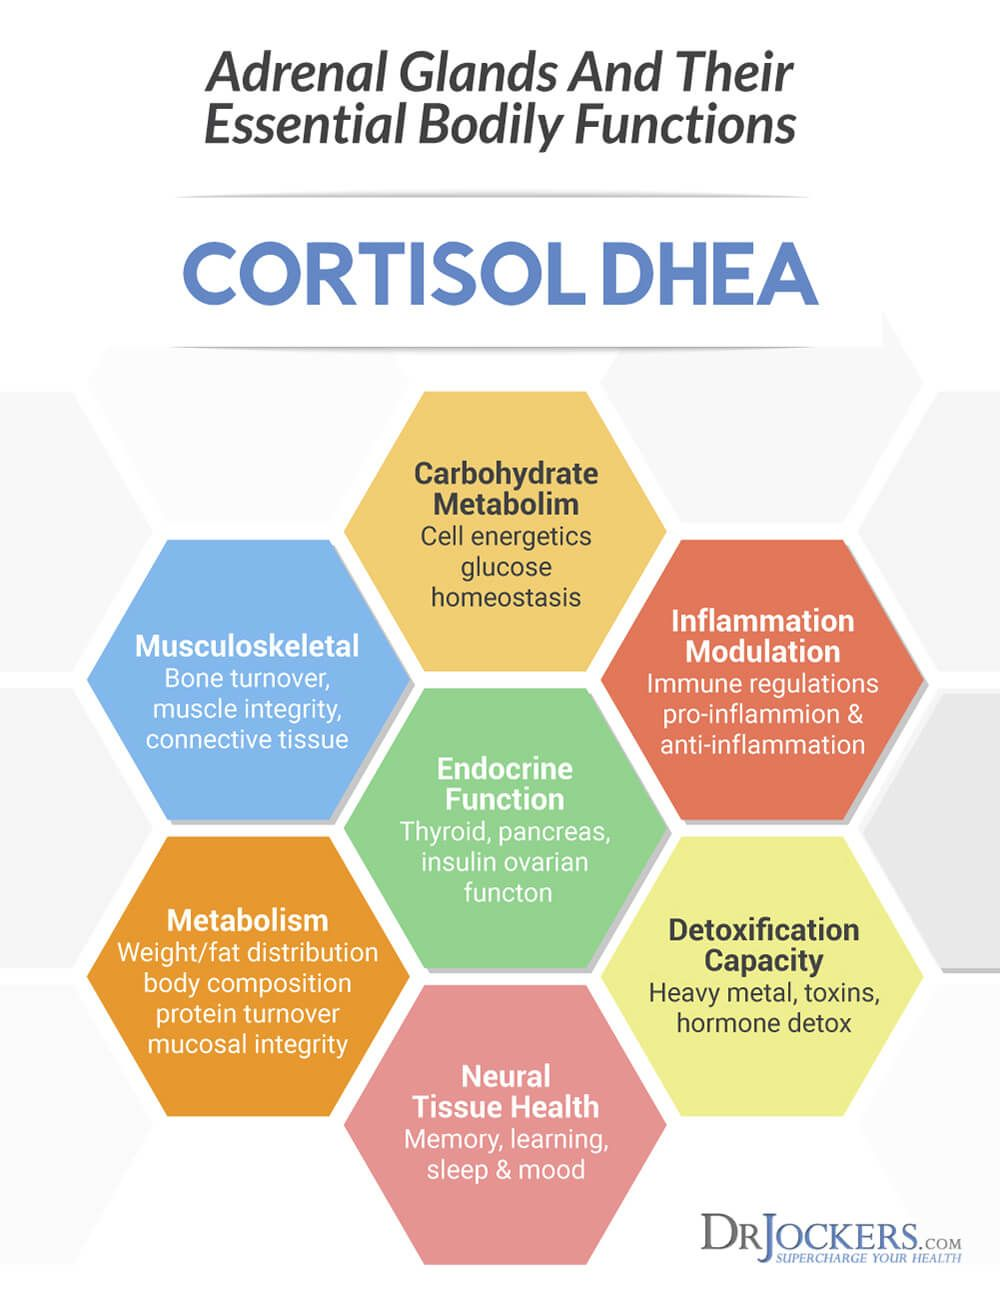 7 Ways To Balance Cortisol Levels Cortisol, High